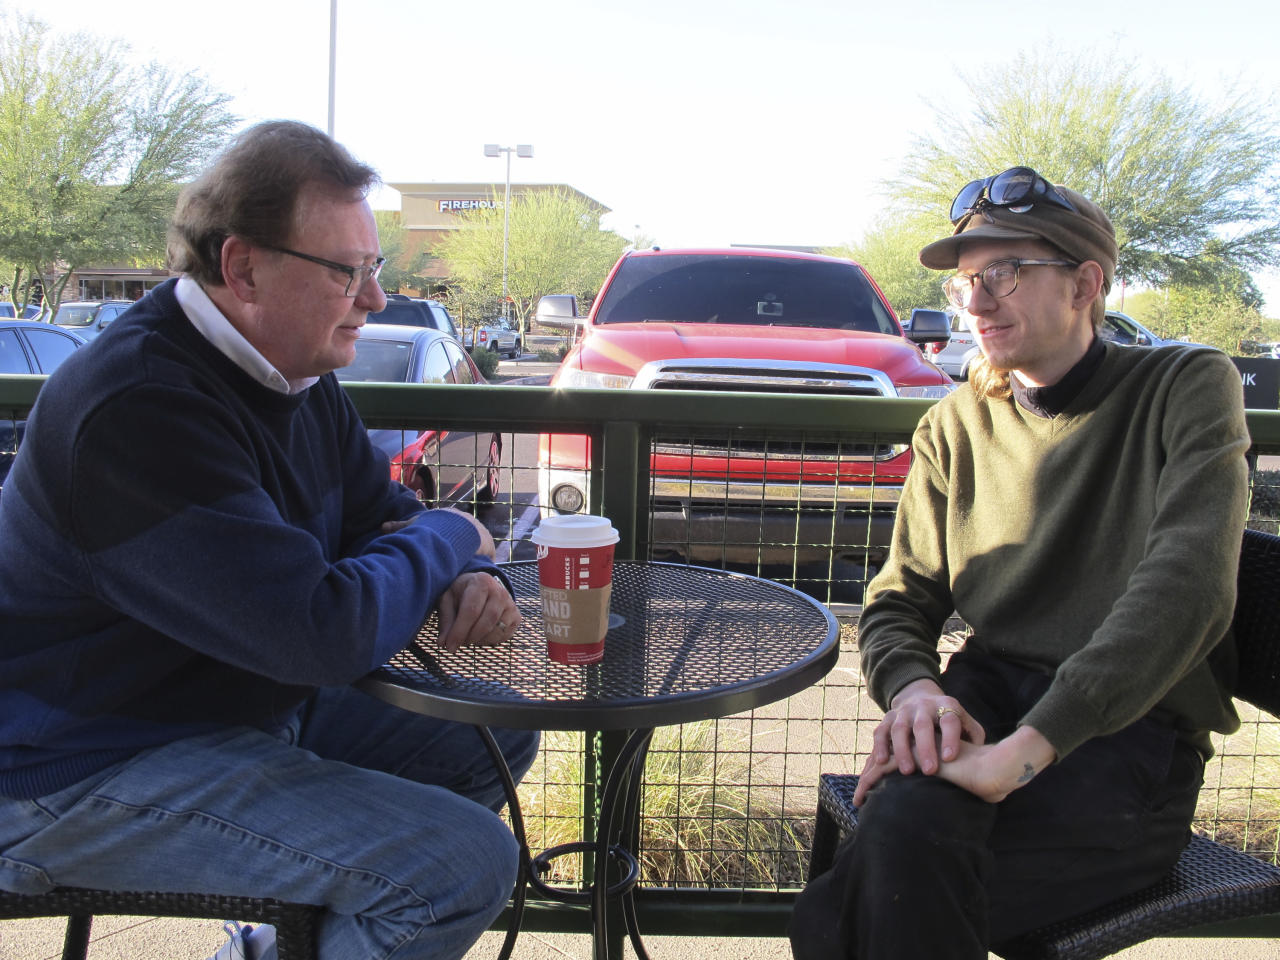 "<p> Christopher Farstad, right, a musician from Minneapolis, speaks with his father, James, at a coffee shop Friday, Dec. 9, 2016, in Gilbert, Ariz. Farstad was among a group of people attending a music event inside a warehouse in Oakland, Calif., on Friday night, Dec 2, 2016, when a fire tore through the building, killing dozens of people. He described the scene as a ""hellish situation."" (AP Photo/Brian Skoloff) </p>"